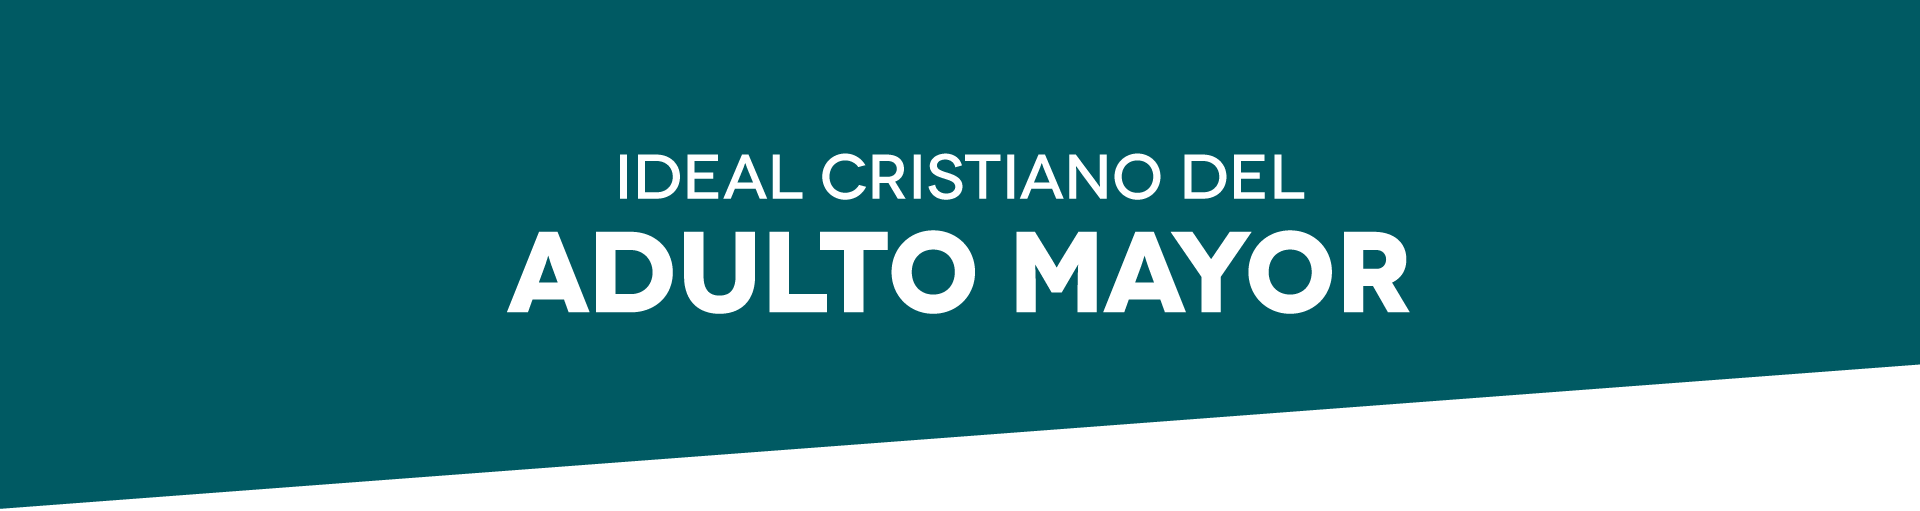 Ideal Cristiano del Adulto Mayor